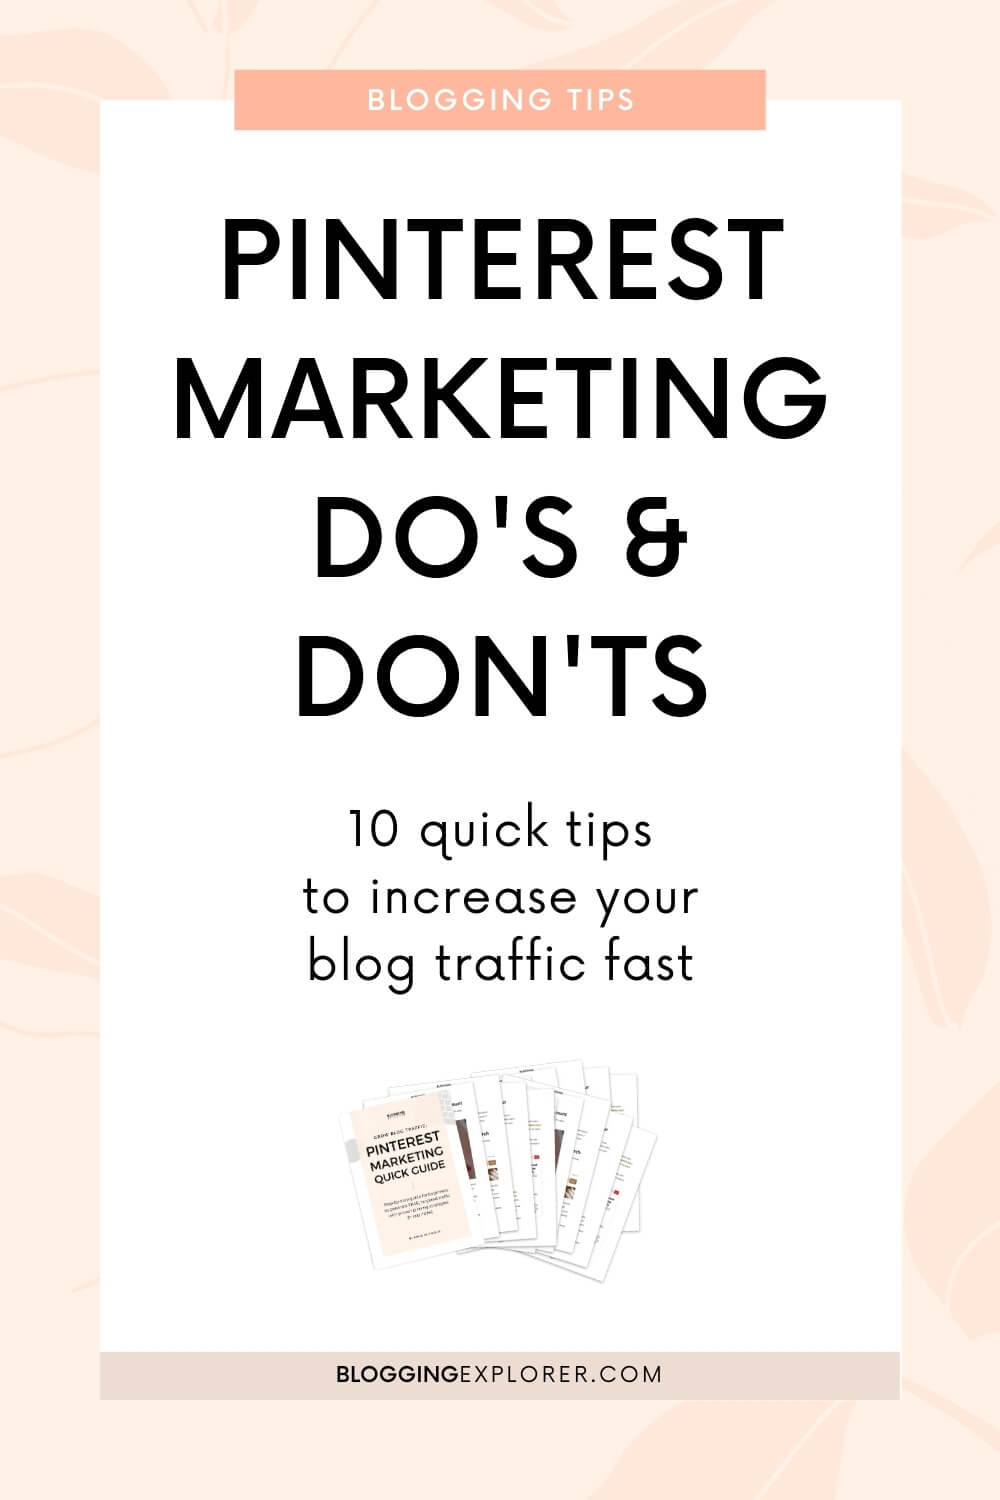 10 Quick Pinterest Marketing Do\'s and Don\'ts (To Grow Blog Traffic)